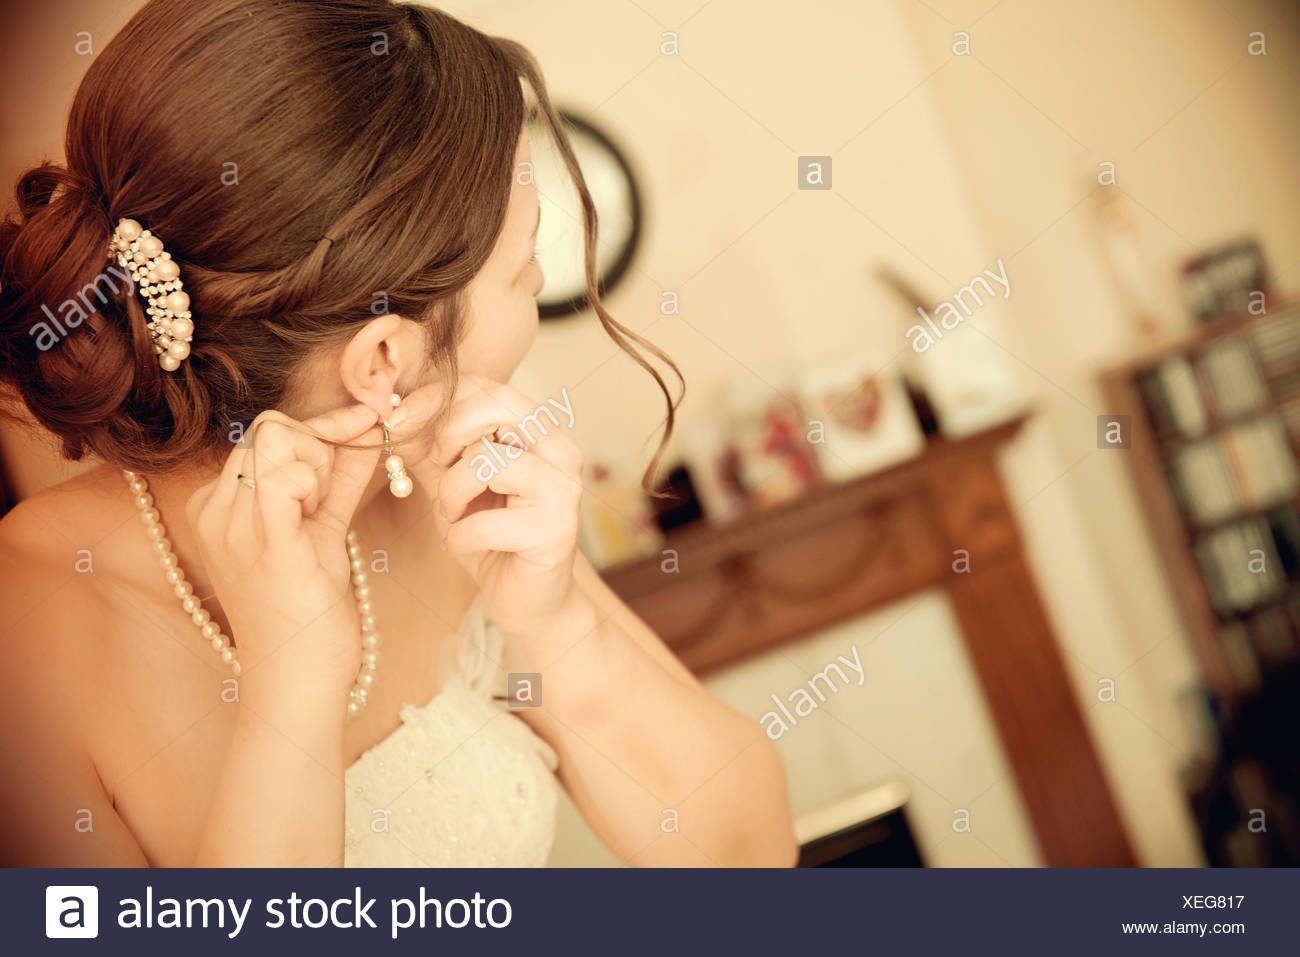 Bride preparing for wedding - Stock Image